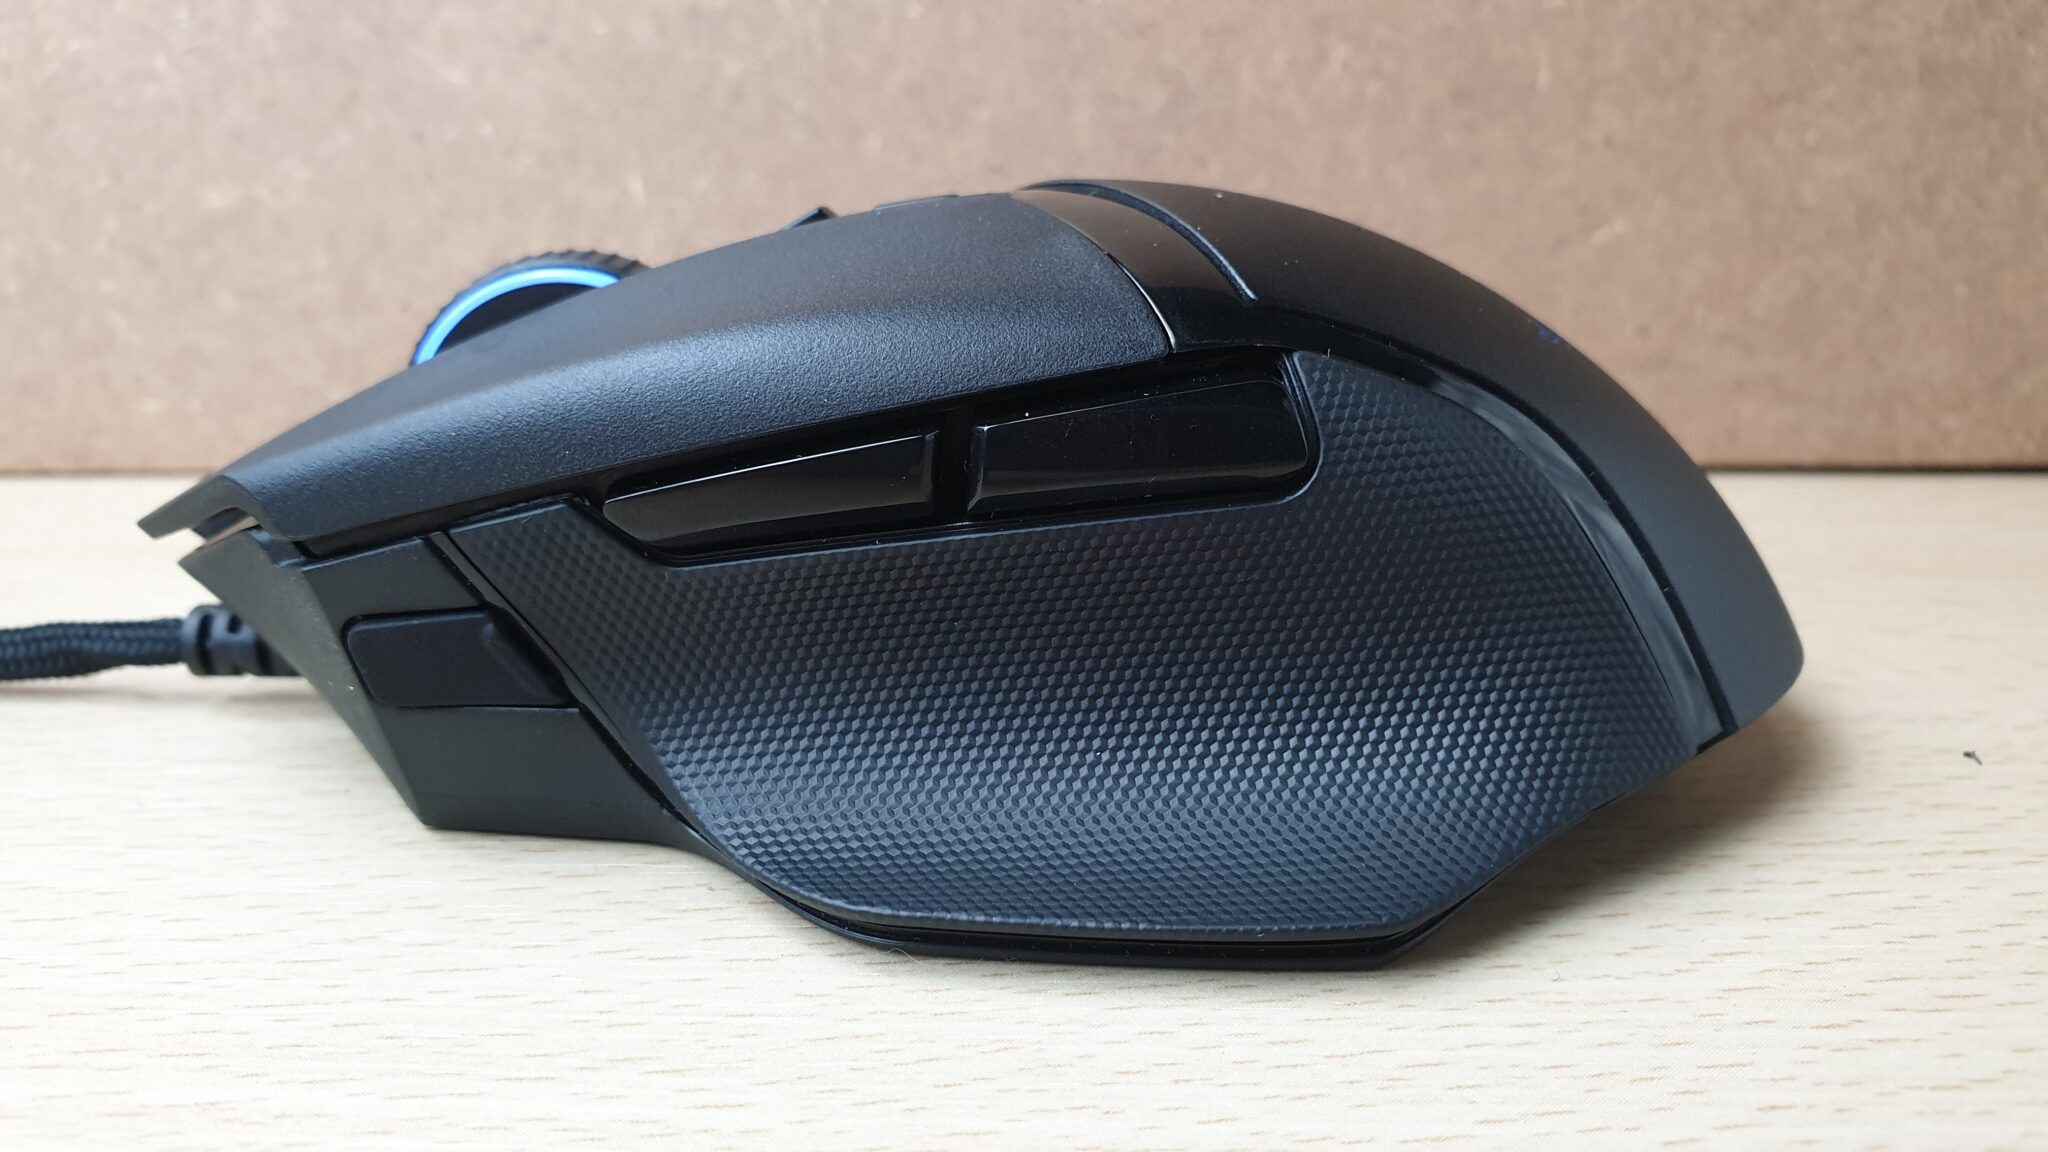 Razer Basilisk V2 side profile